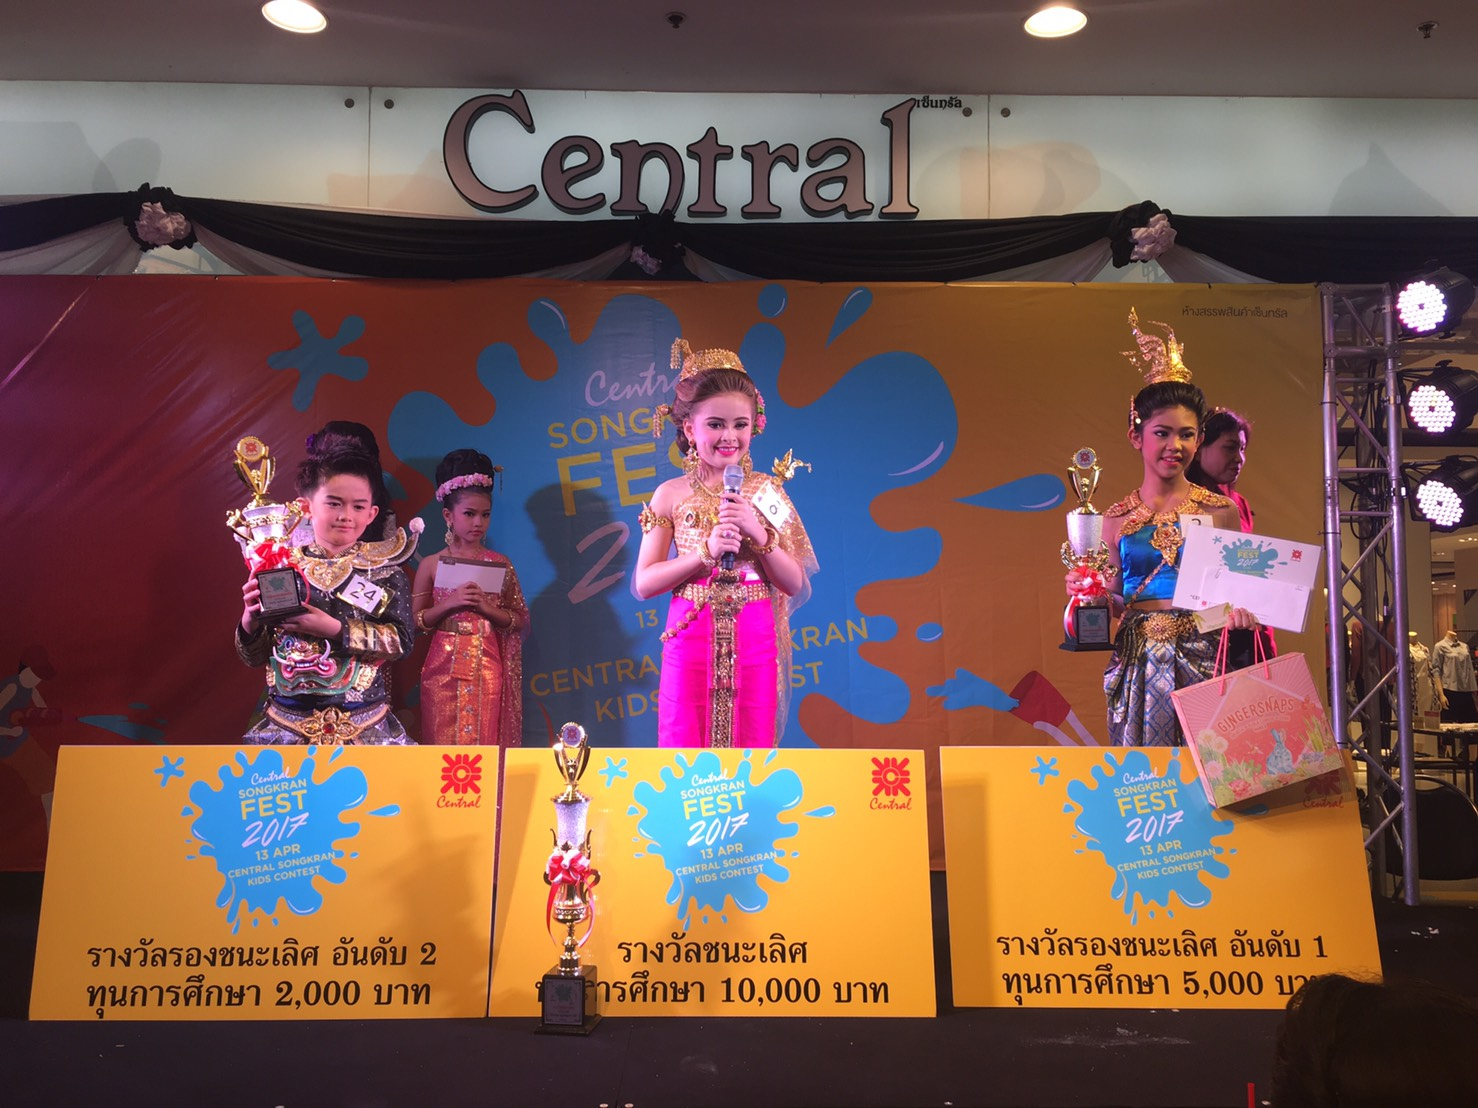 The first-place winner was Angie Palida (center), who won a 10,000 baht scholarship.